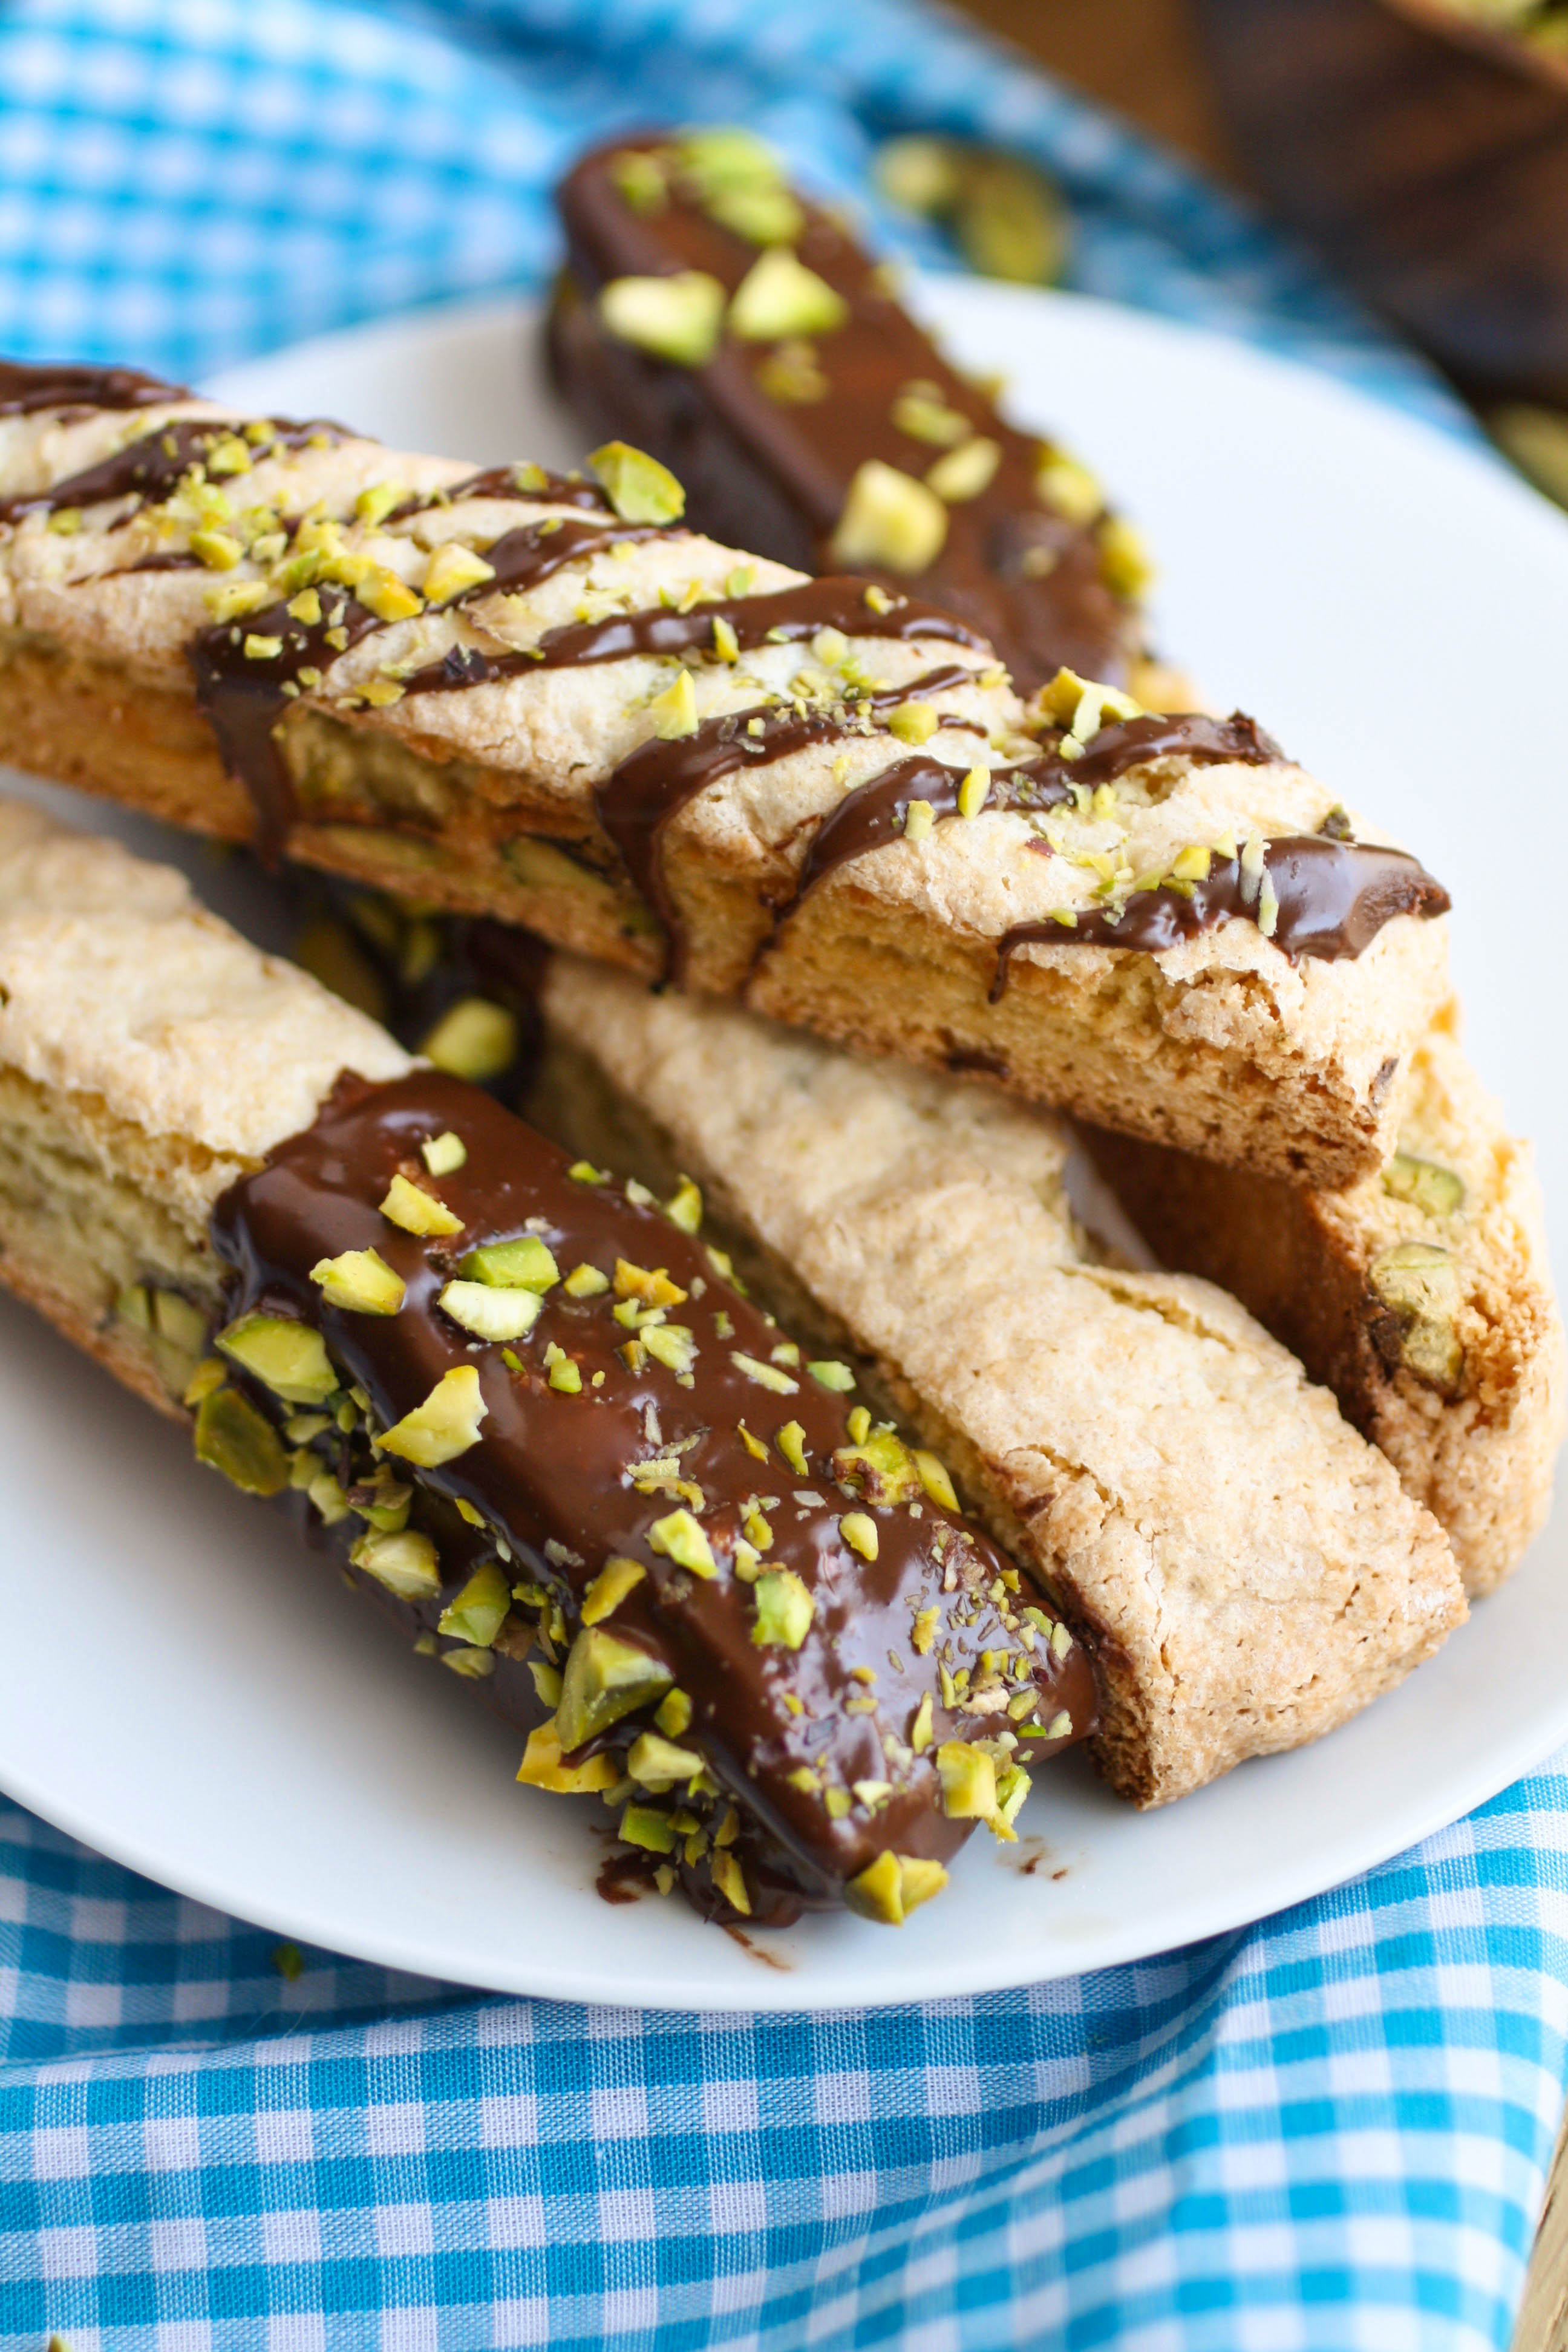 Chocolate-Espresso Dipped Orange and Pistachio Biscotti is an Italian-style cookie that is delicious served with coffee or milk! You'll love the flavors!